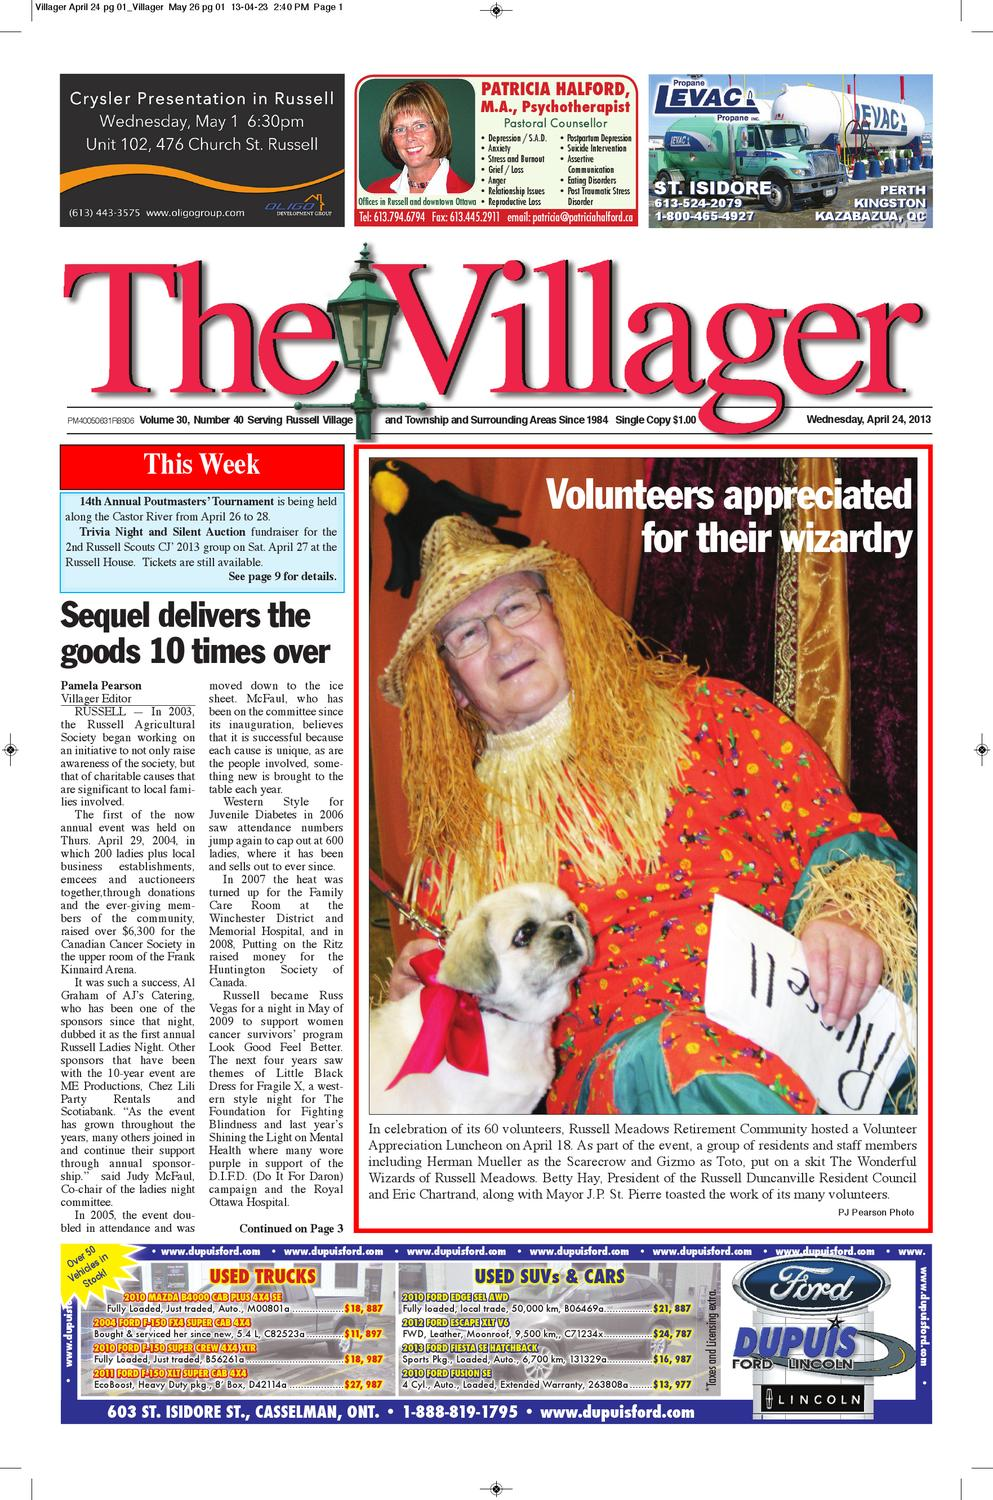 �9�nZk�K��kK.��.Y_TheVillager-April24,2013byEtc.Publications-Issuu